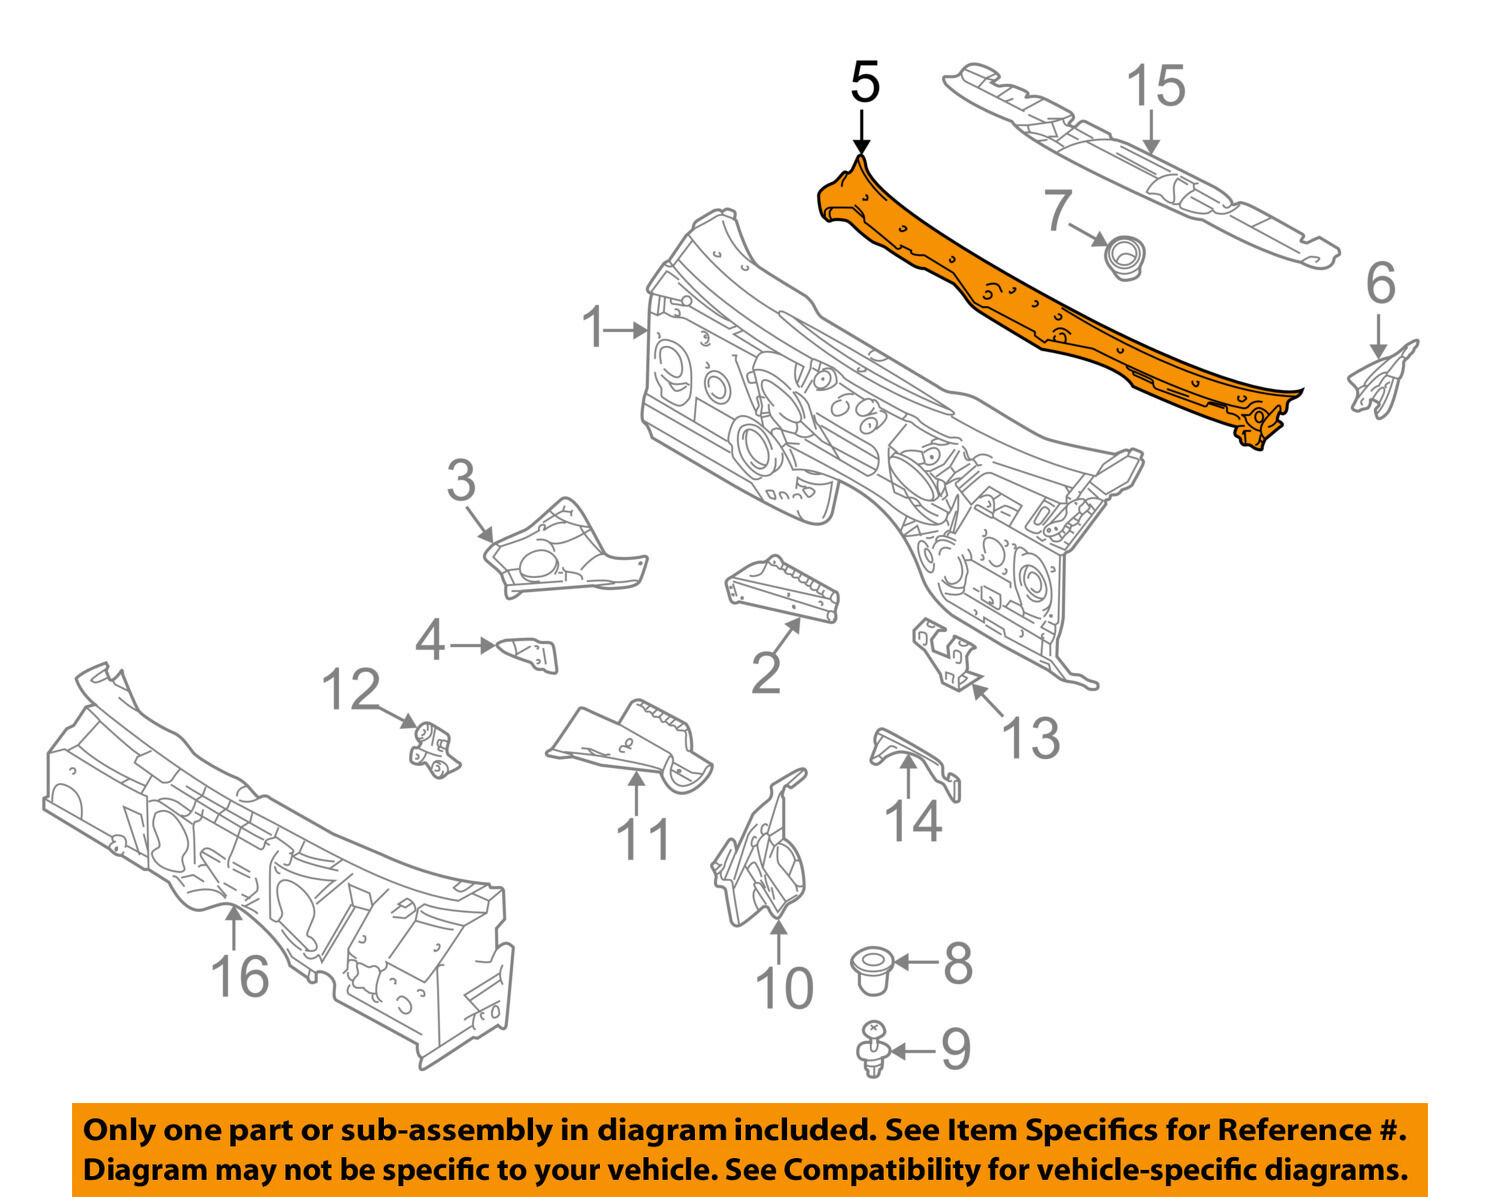 Bmw Oem 97 03 540i Cowl Panel Windshield Wiper Motor Cover 1998 Engine Diagram 1 Of 2only Available